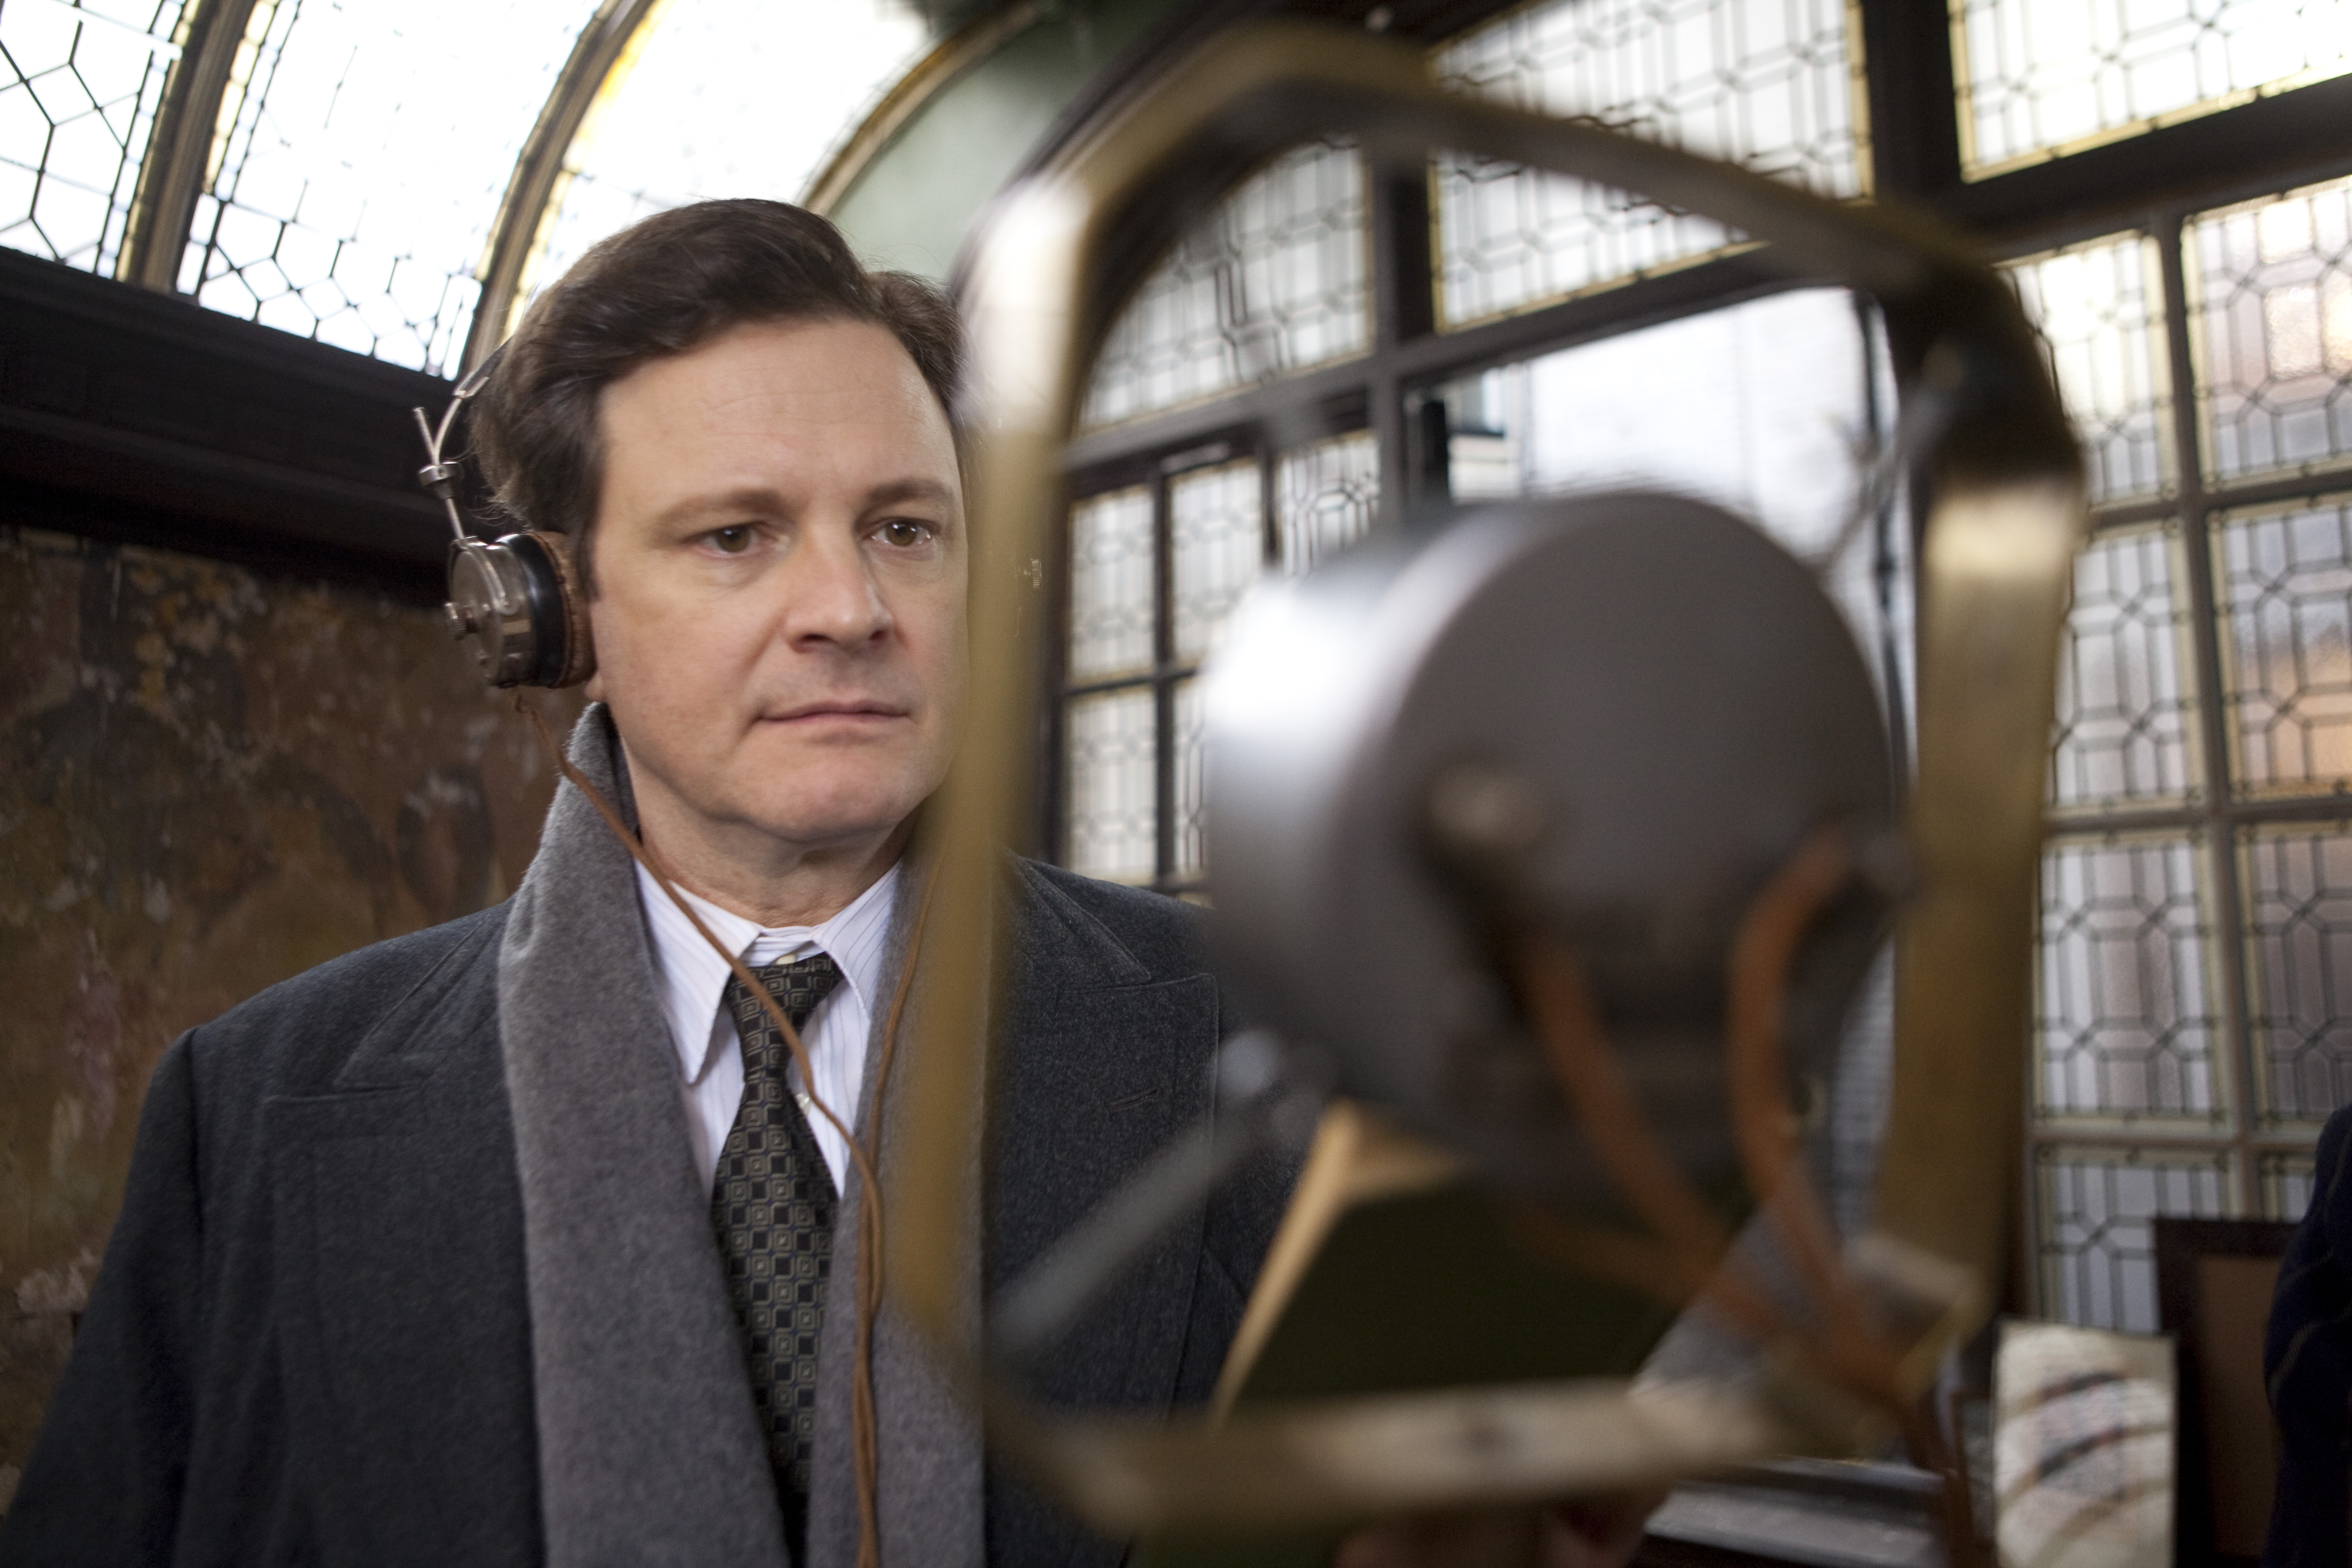 Watch: 'The King's Speech' Screenwriter Reveals His Writing Process: Fly  Fishing | IndieWire